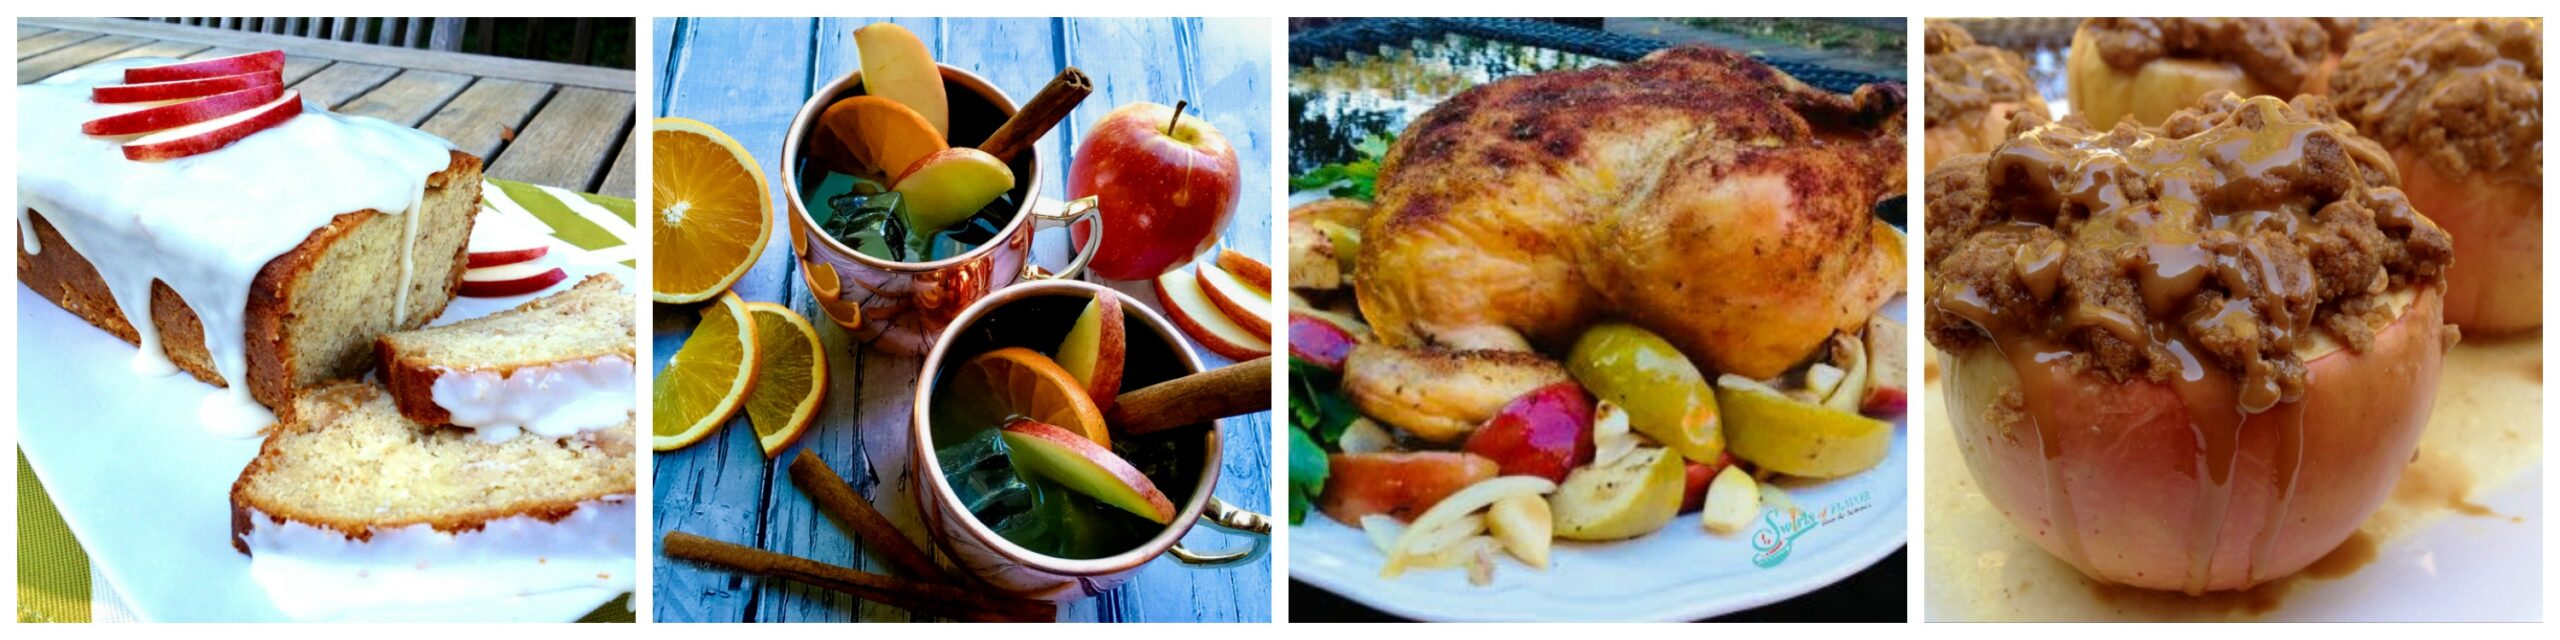 Left to Right: Apple Cake; Apple Cider Moscow Mule; Roasted chicken with Apples; Apple Crumb Baked Apples